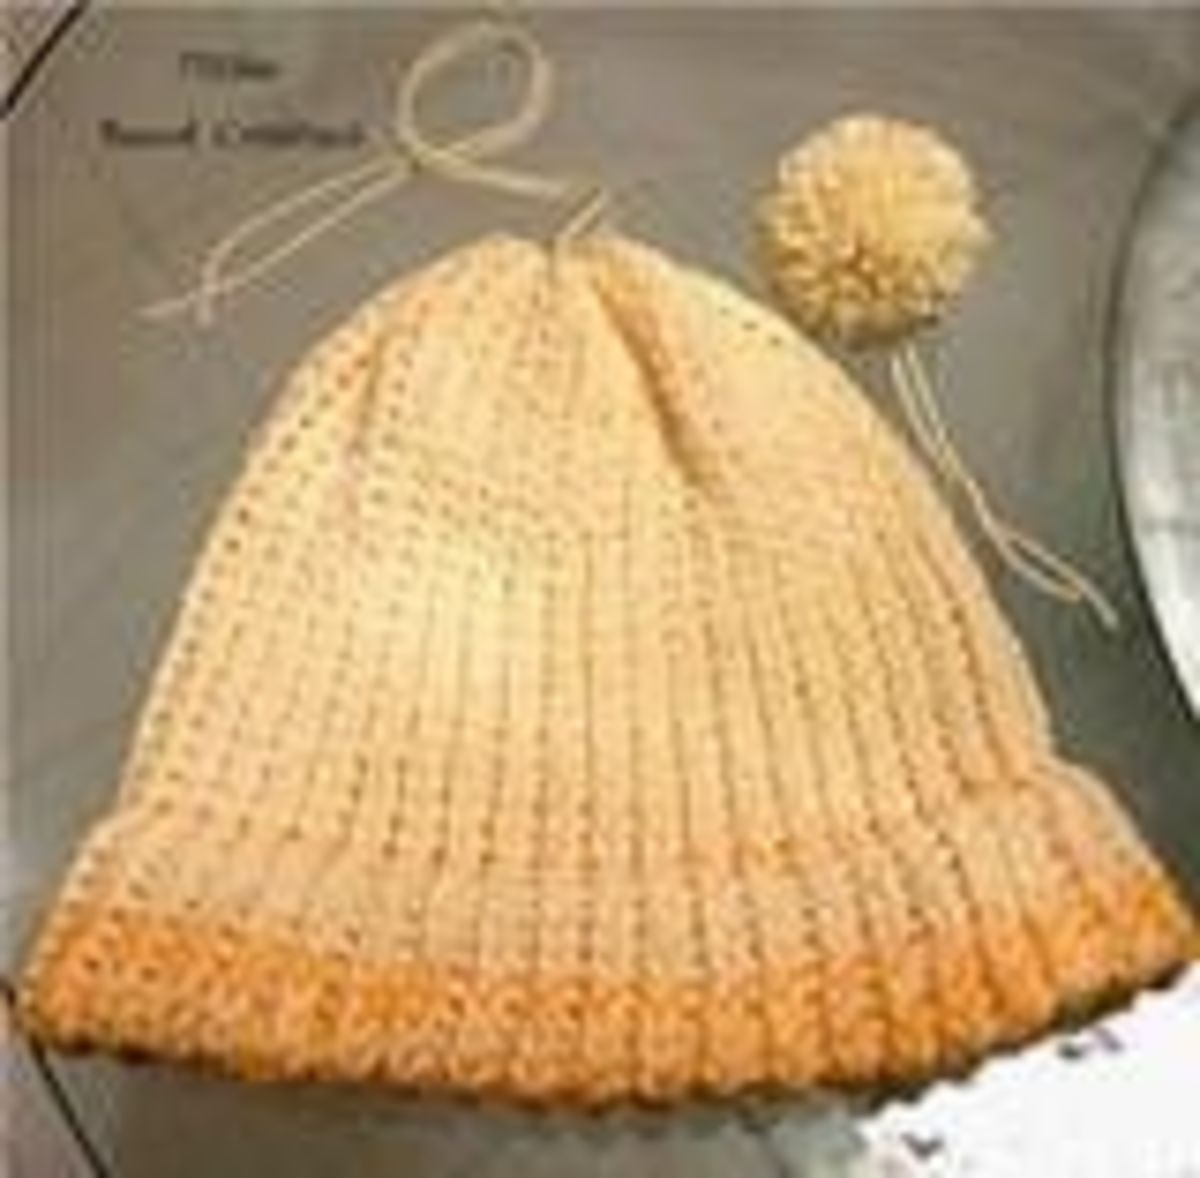 Finished Knit Hats and  Pom Poms have Two (2) Leftover Strings that you can use to attach them together.